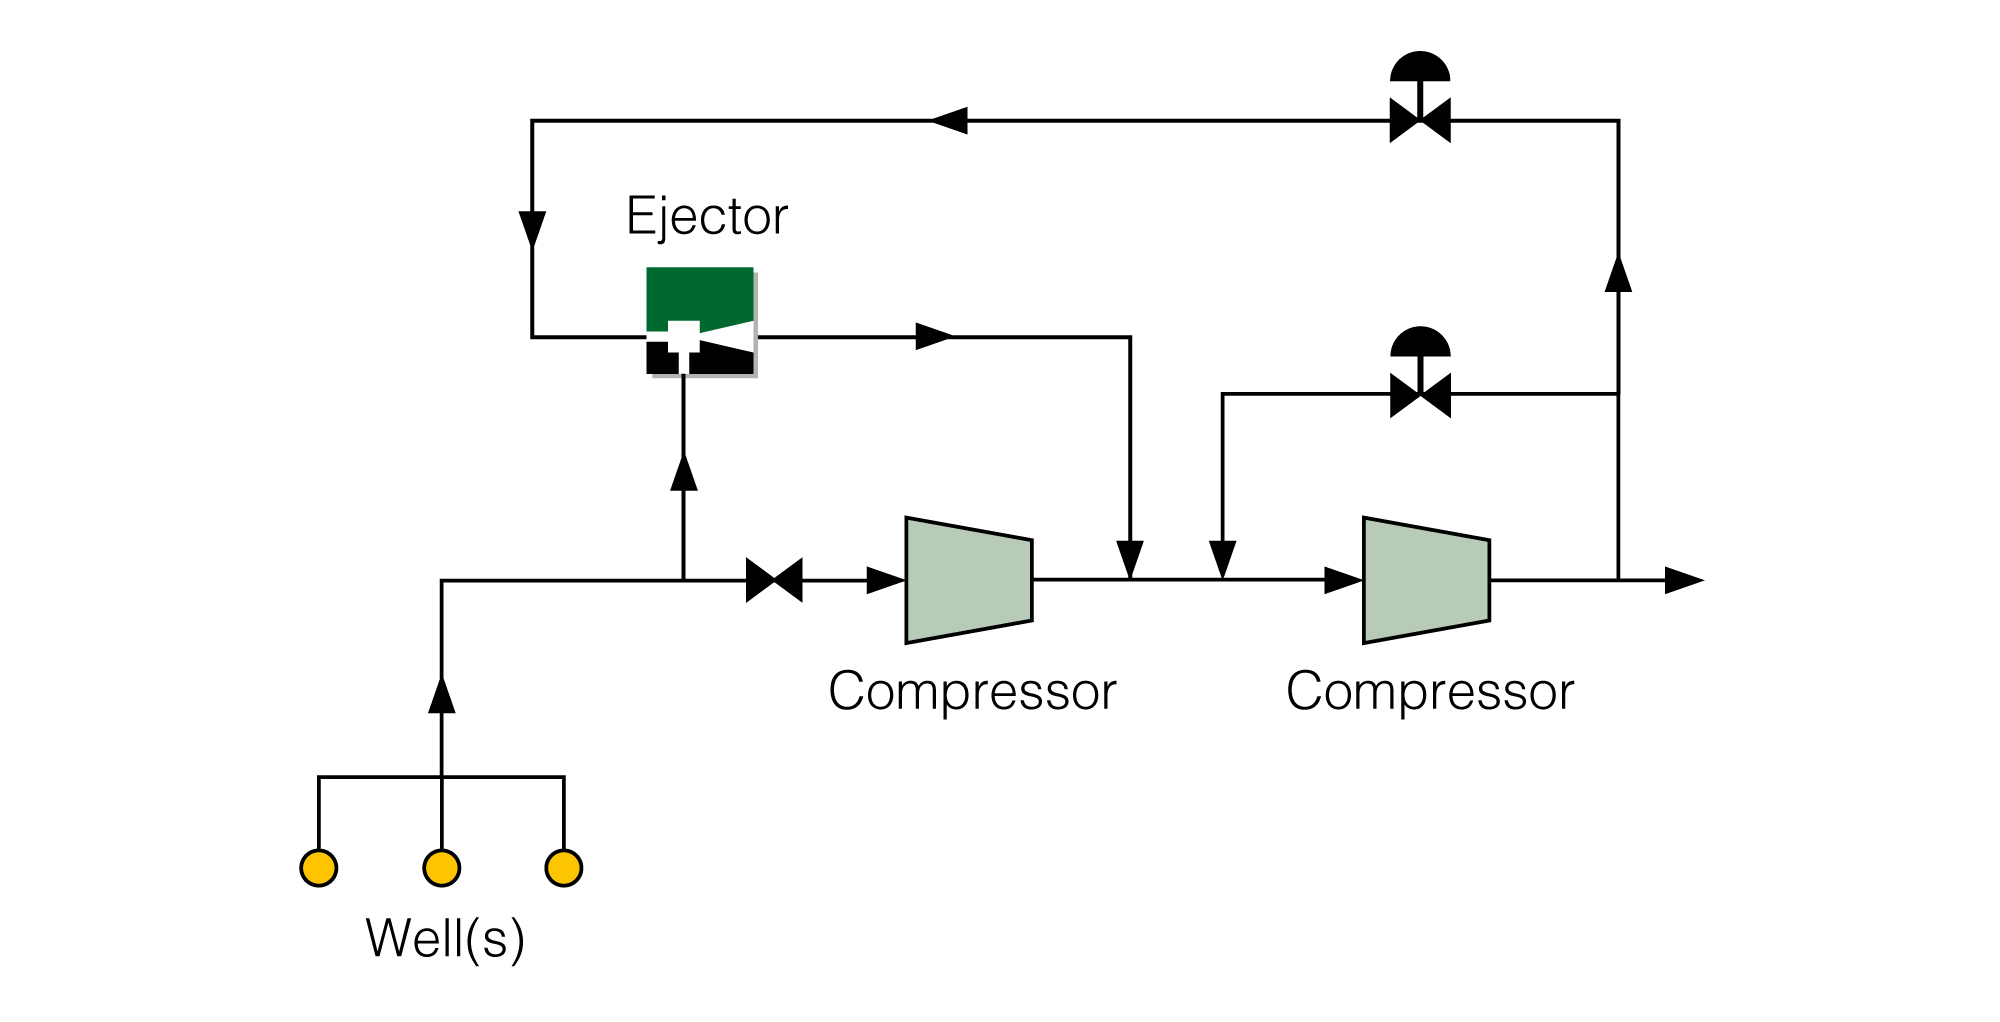 Compressor Recycle Opportunity using Ejectors to debottleneck an LP compressor